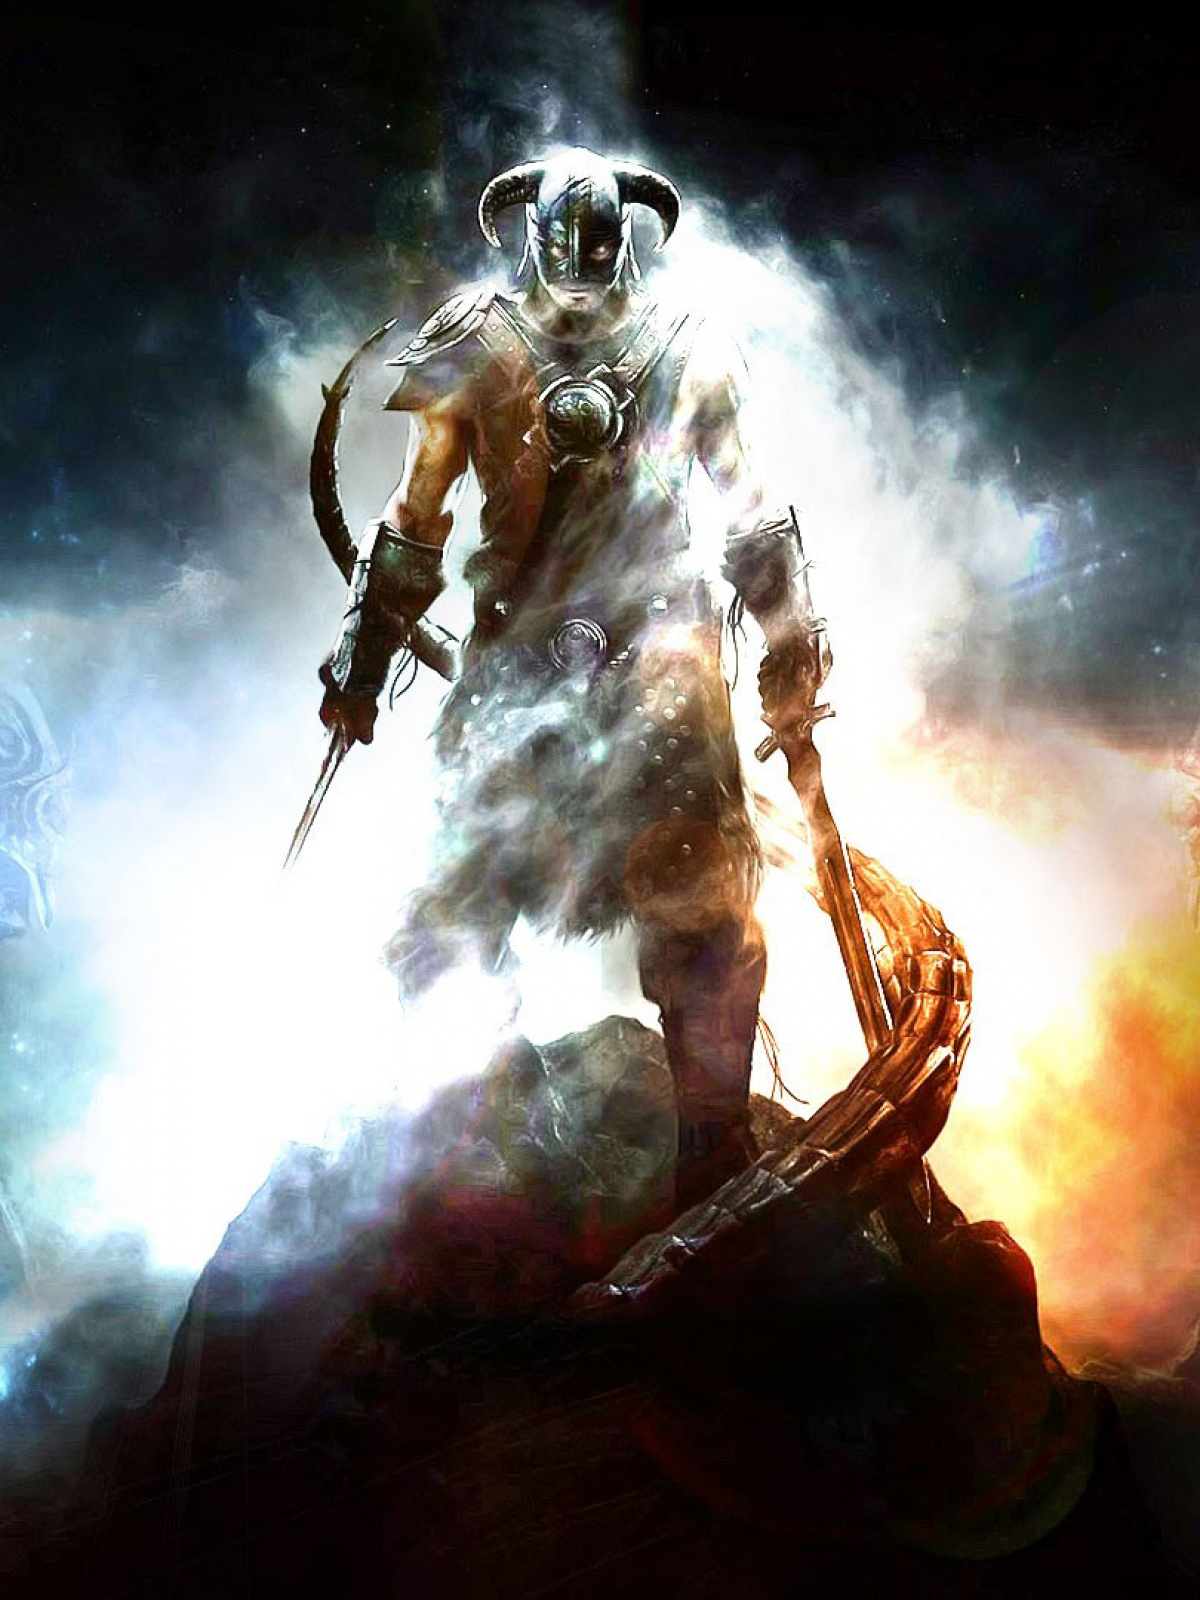 Skyrim Mobile Wallpaper Mobiles Wall